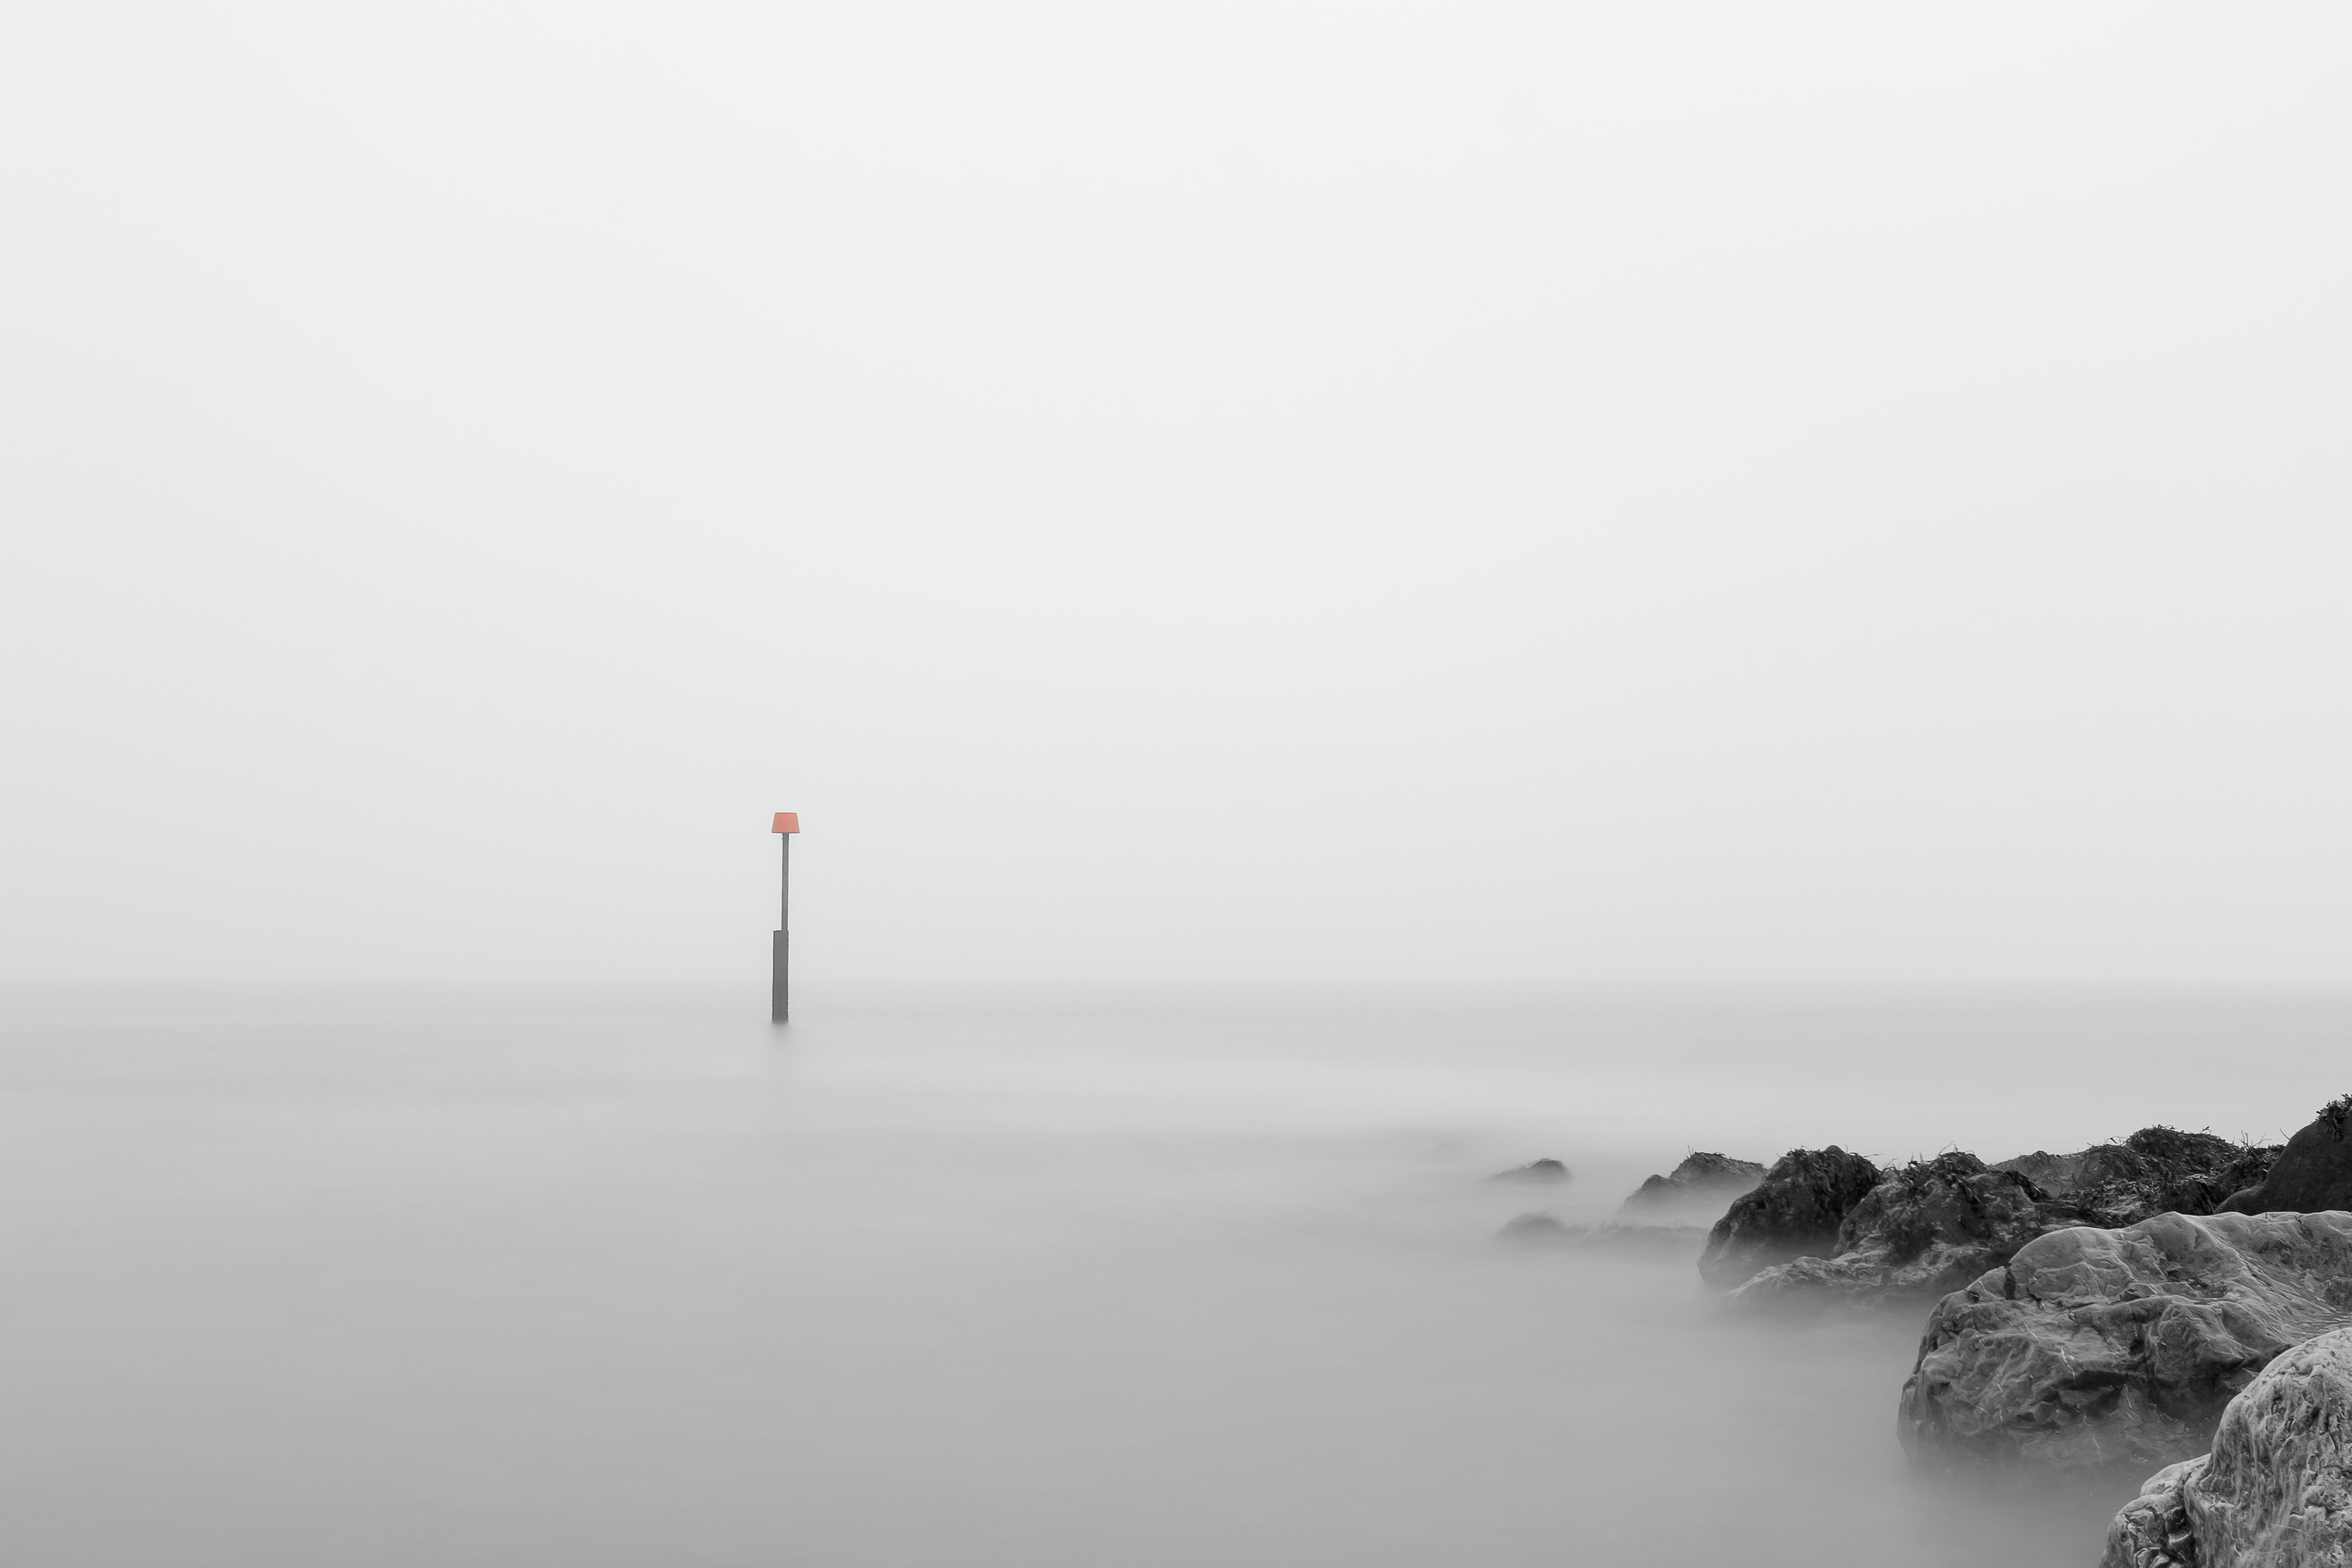 Isolated sign in the middle of a foggy sea near rocks